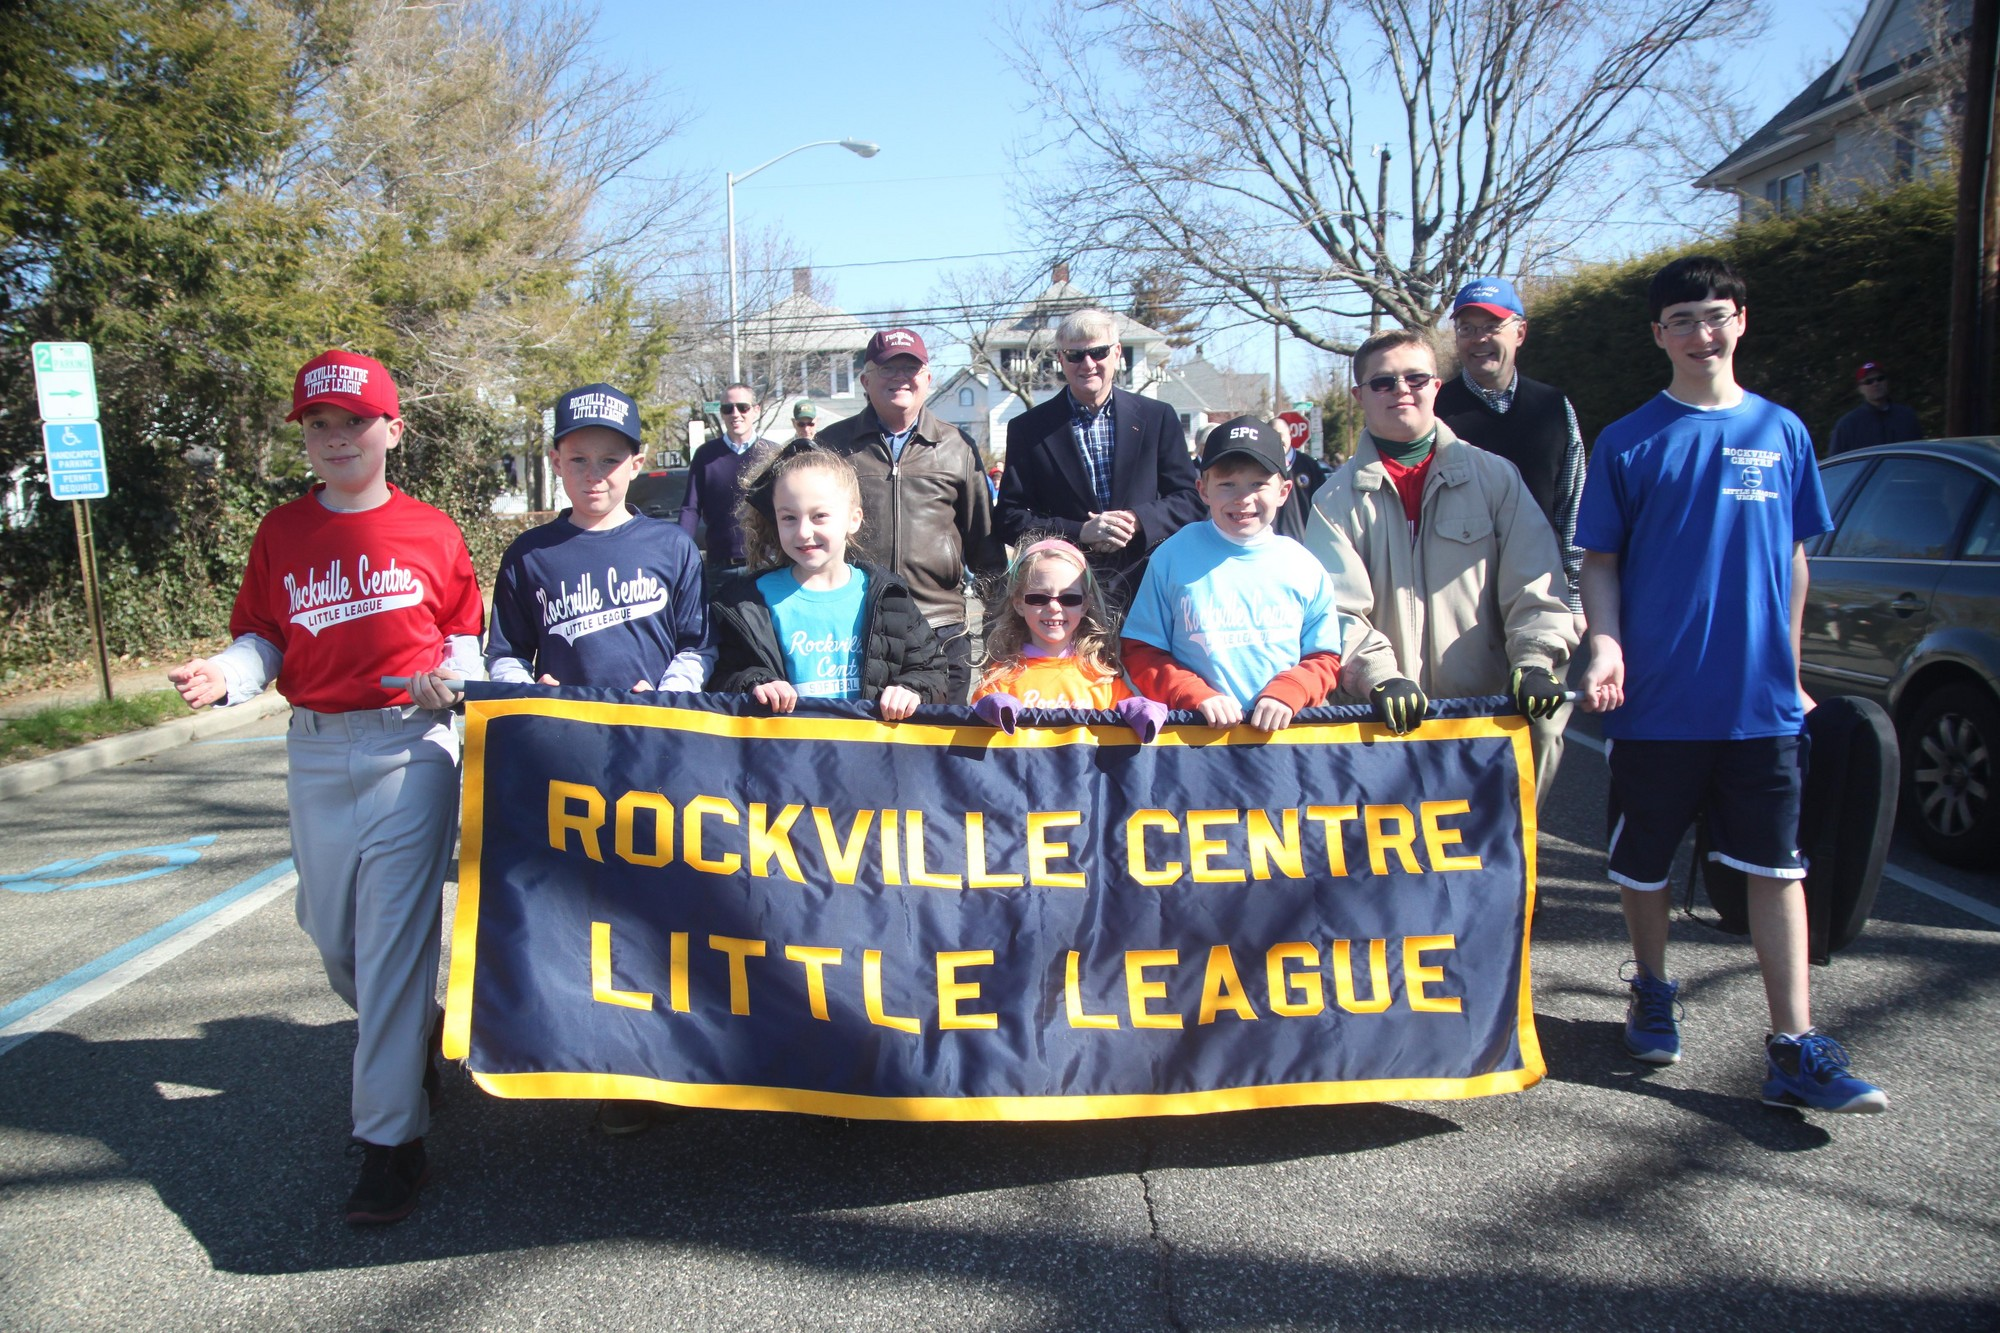 The Rockville Centre Little League kicked off its 2013 season last Sunday with its annual parade and food drive. The players collected more than 2,000 pounds of food this year. Holding the banner during the parade were, from left, Brian St. Pierre, JT Travers, Taylor Baetens, Delia Ryan, Ryan Kennedy, Connor Barry, and Alex Klein.